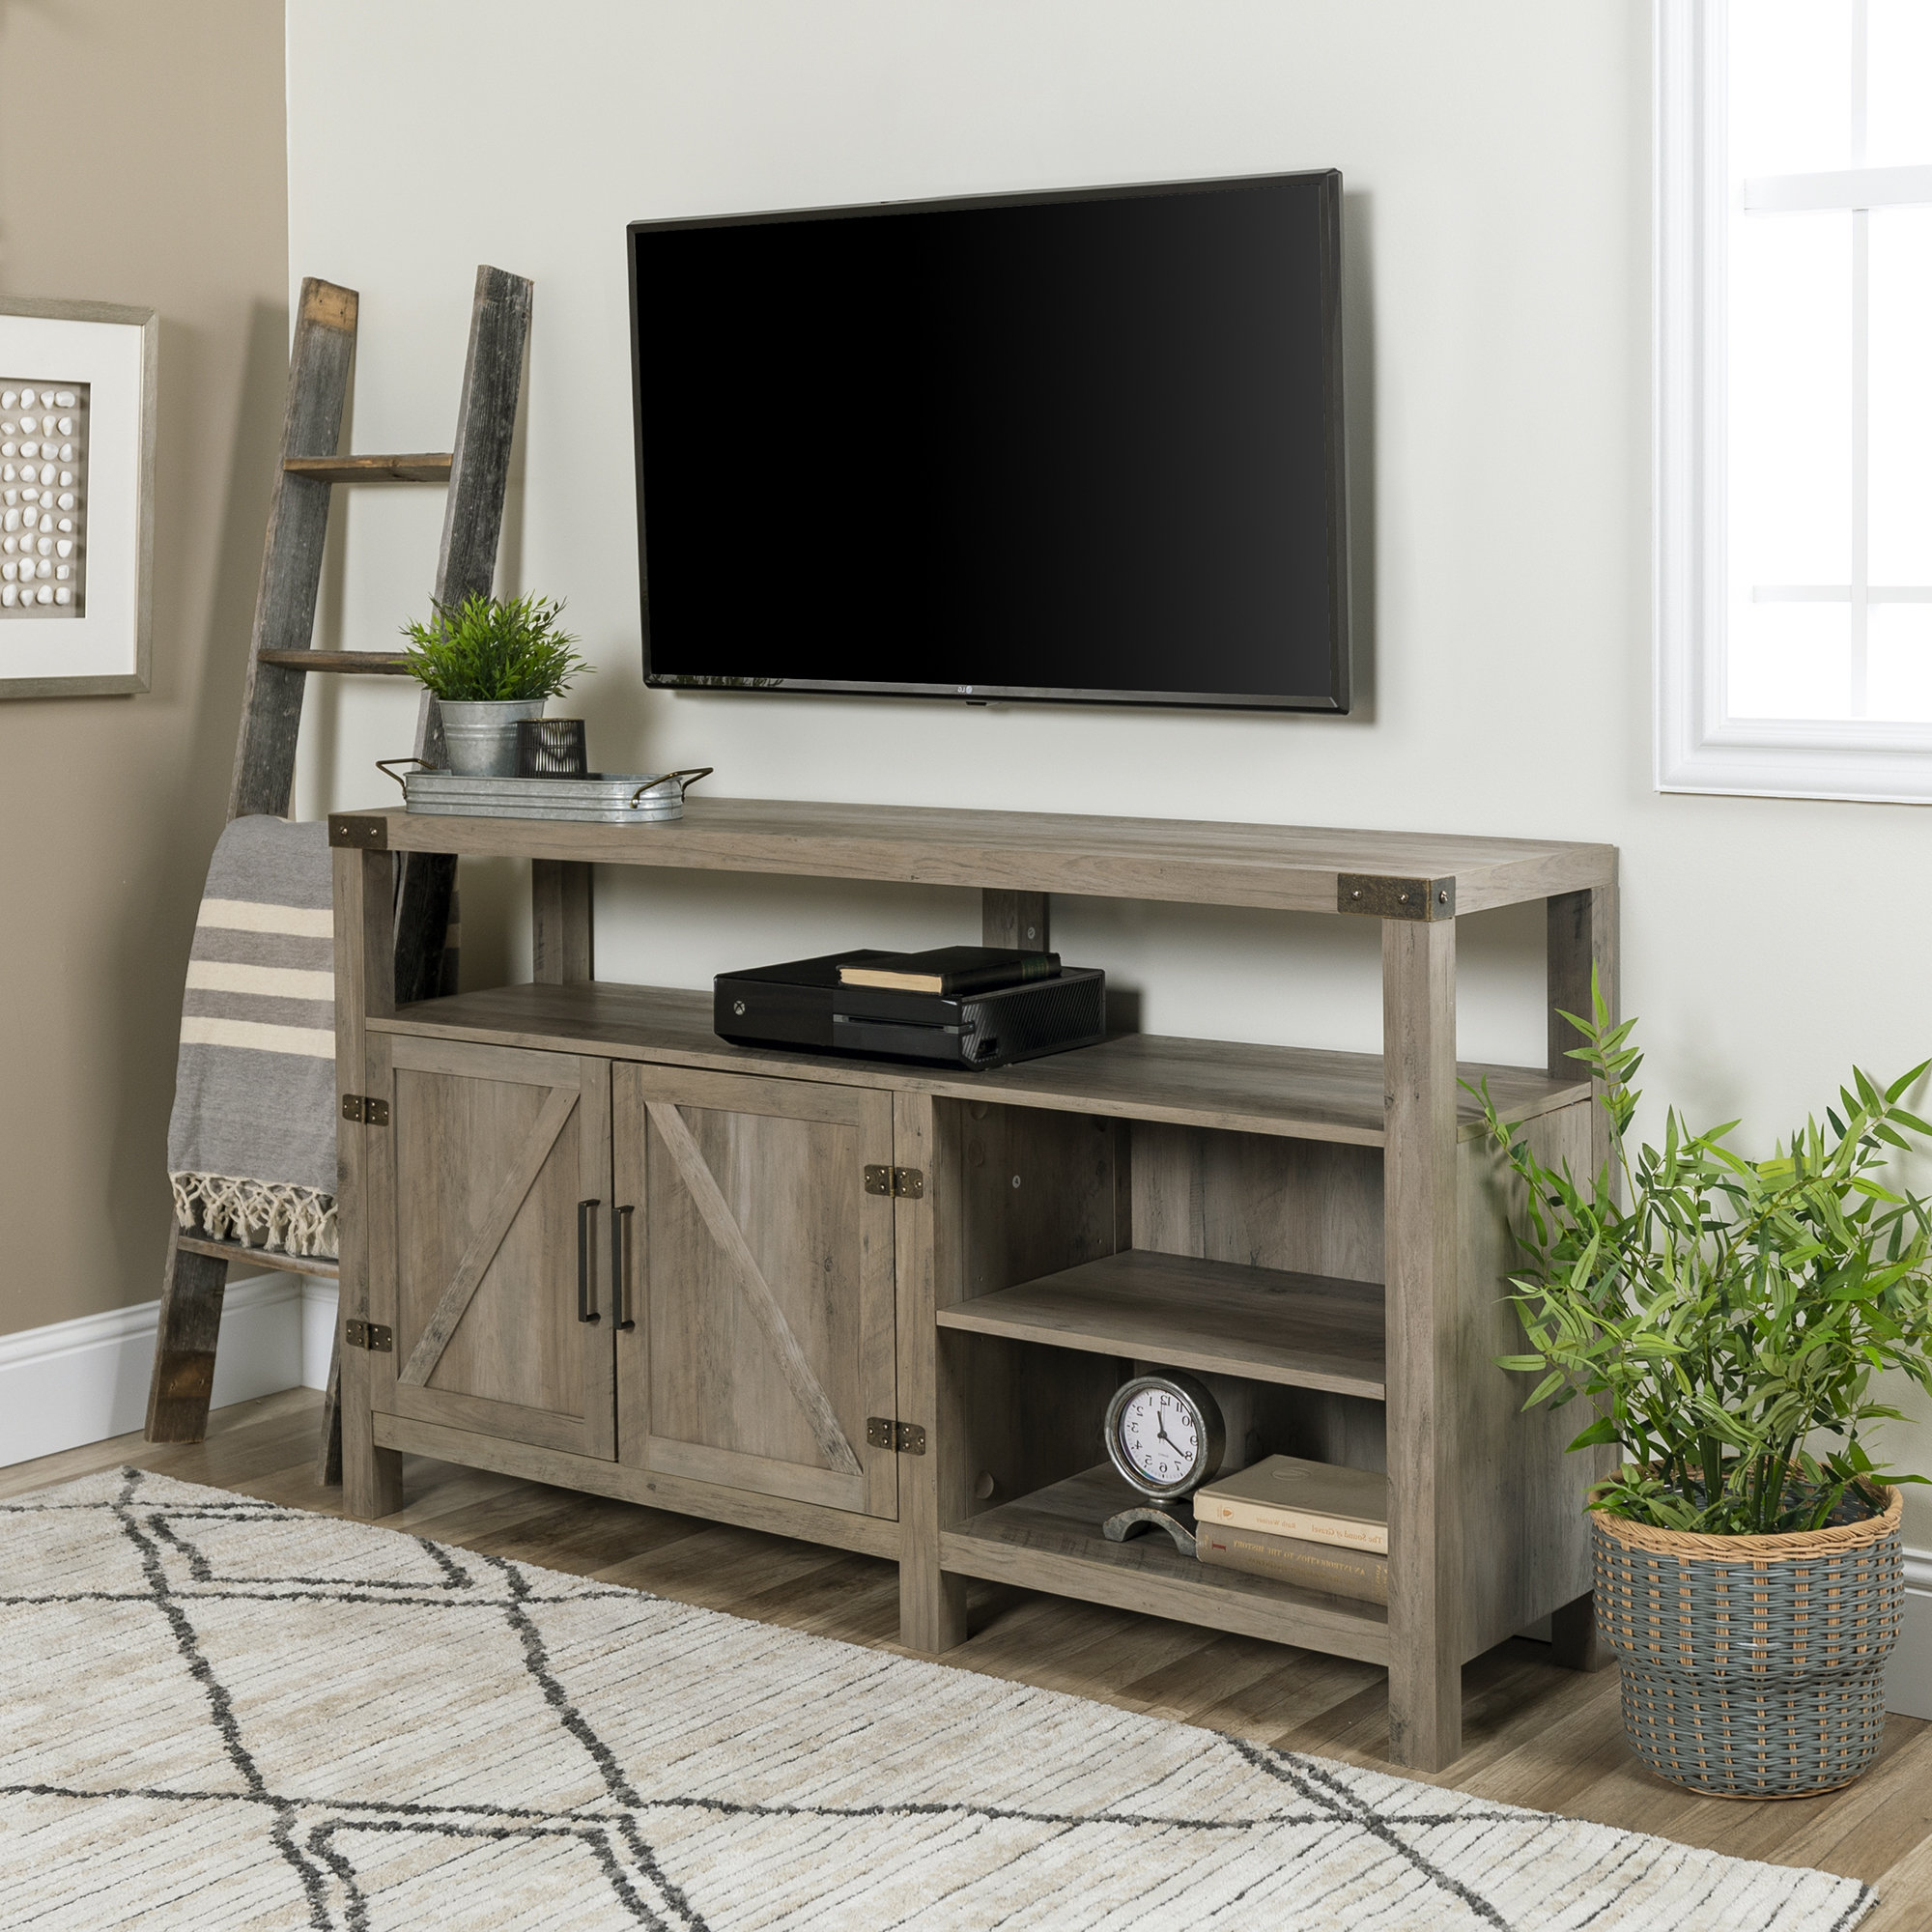 Tall Tv Stands You'll Love | Wayfair With Regard To Edwin Black 64 Inch Tv Stands (Gallery 3 of 20)